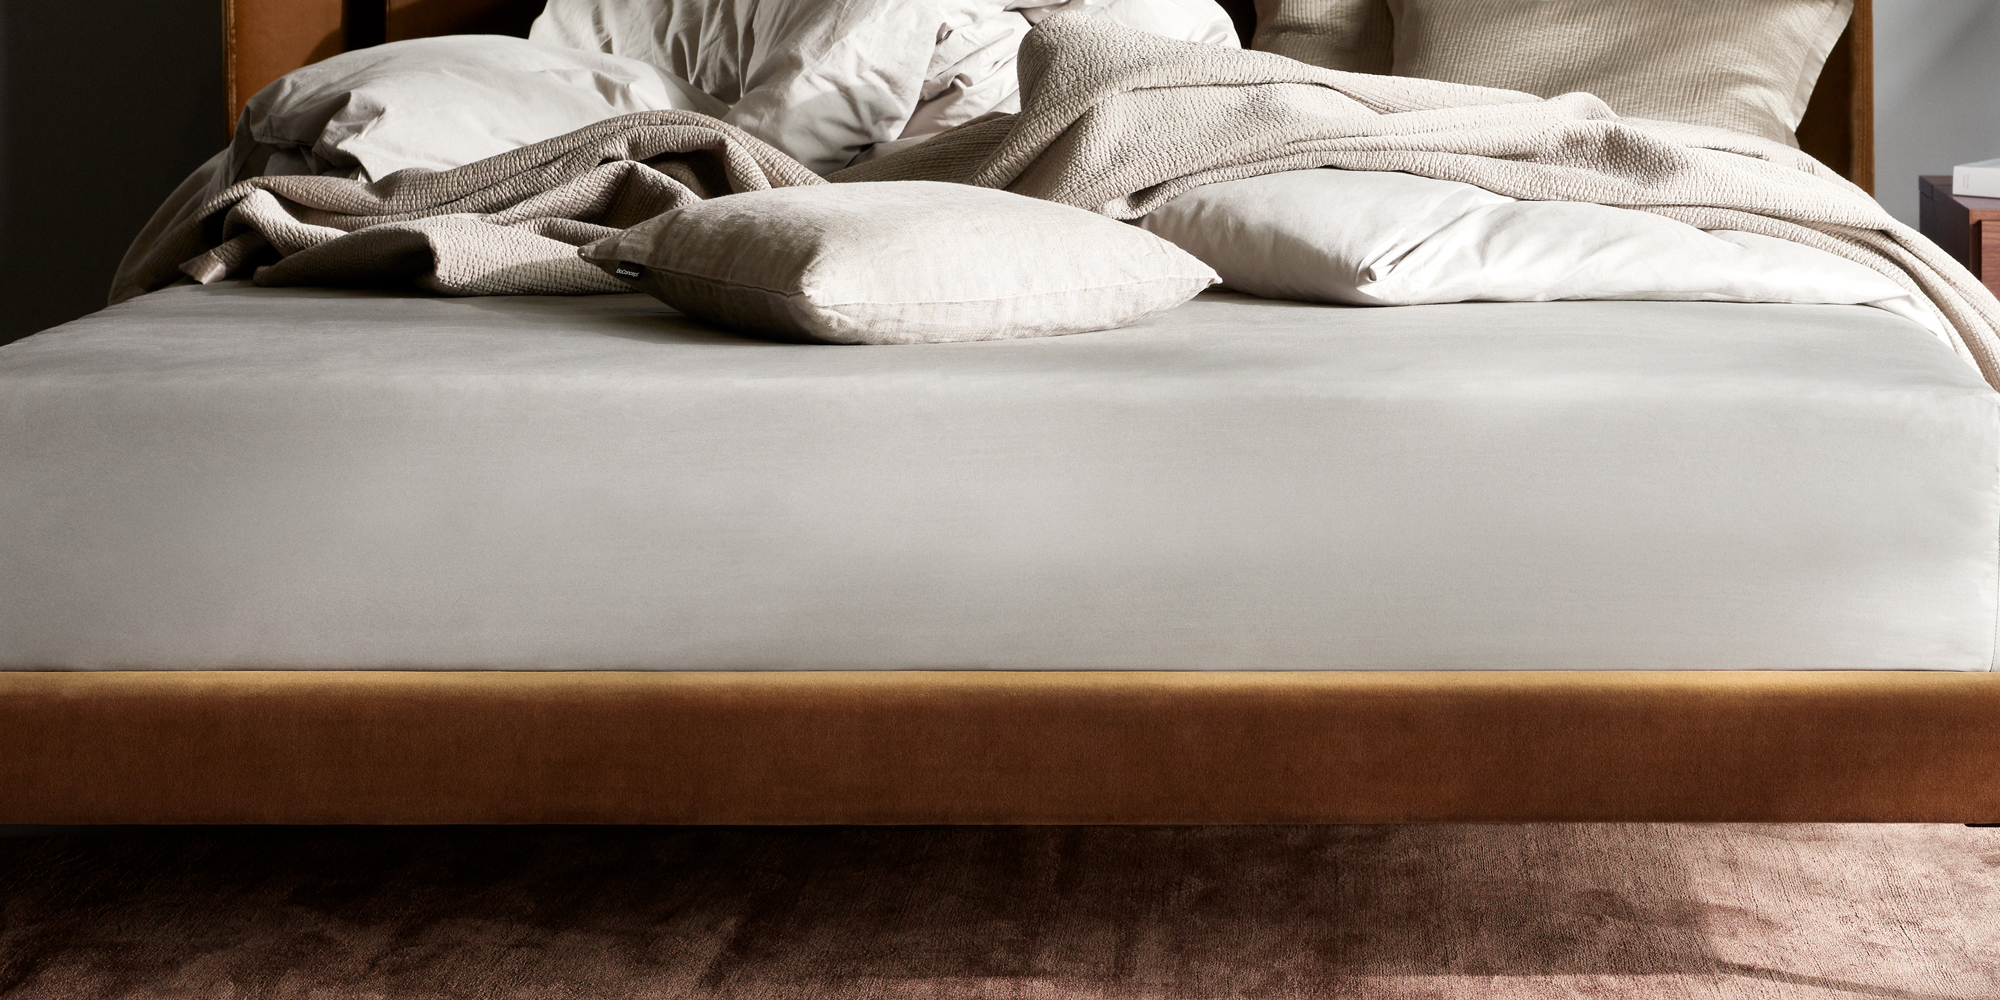 Up to 20% off beds, storage and outdoor furniture